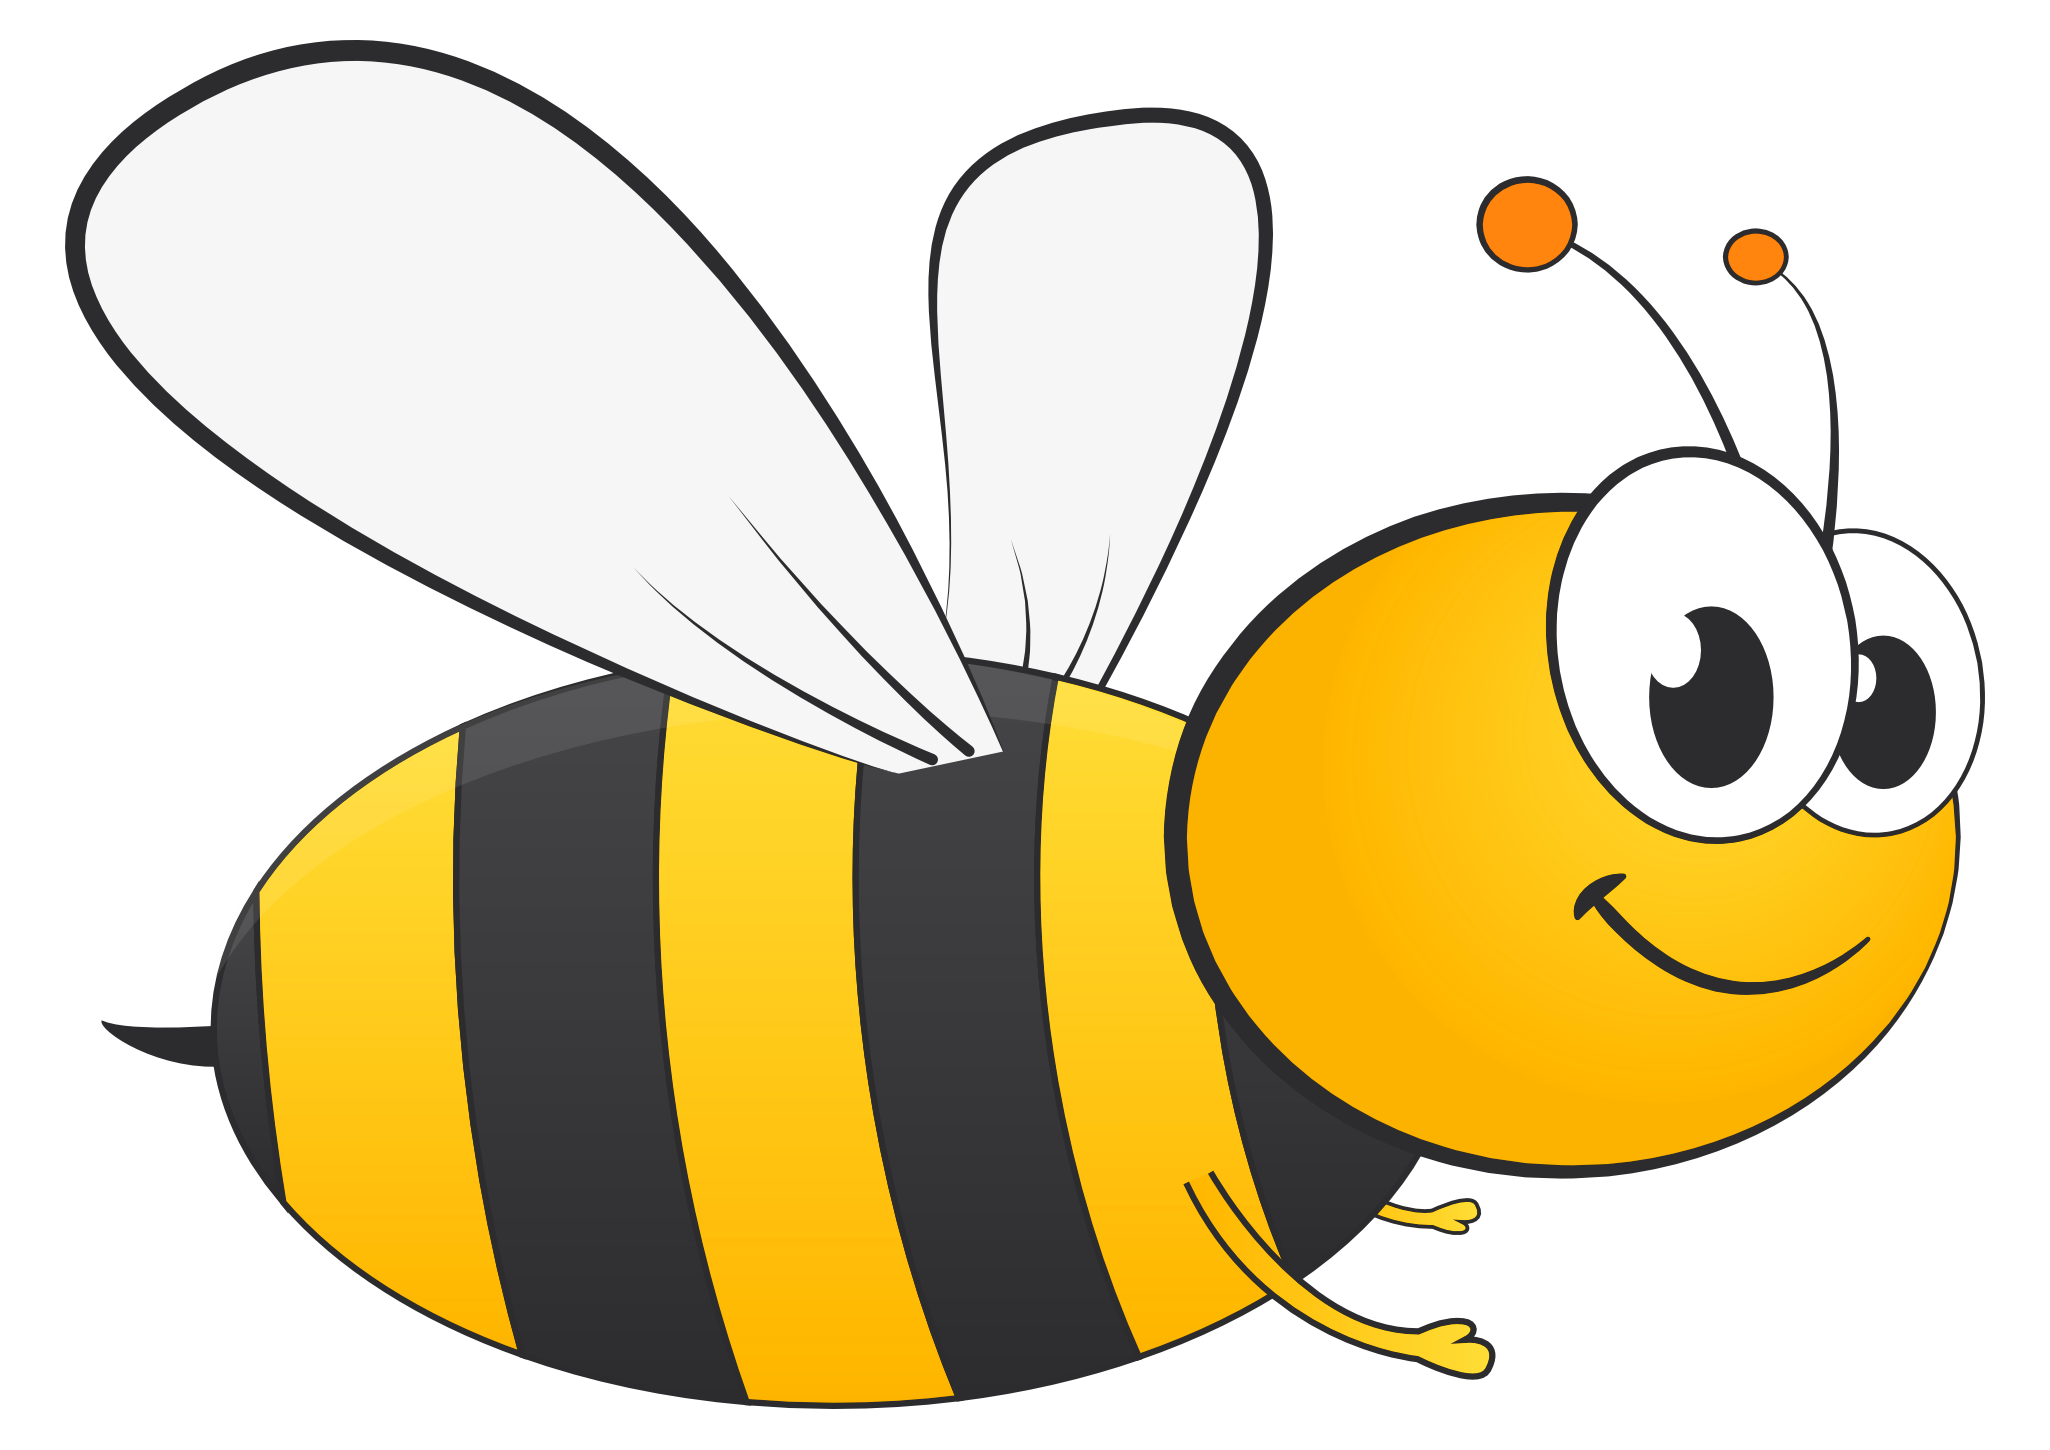 Free honey transparent images. Cartoon bee png image black and white download